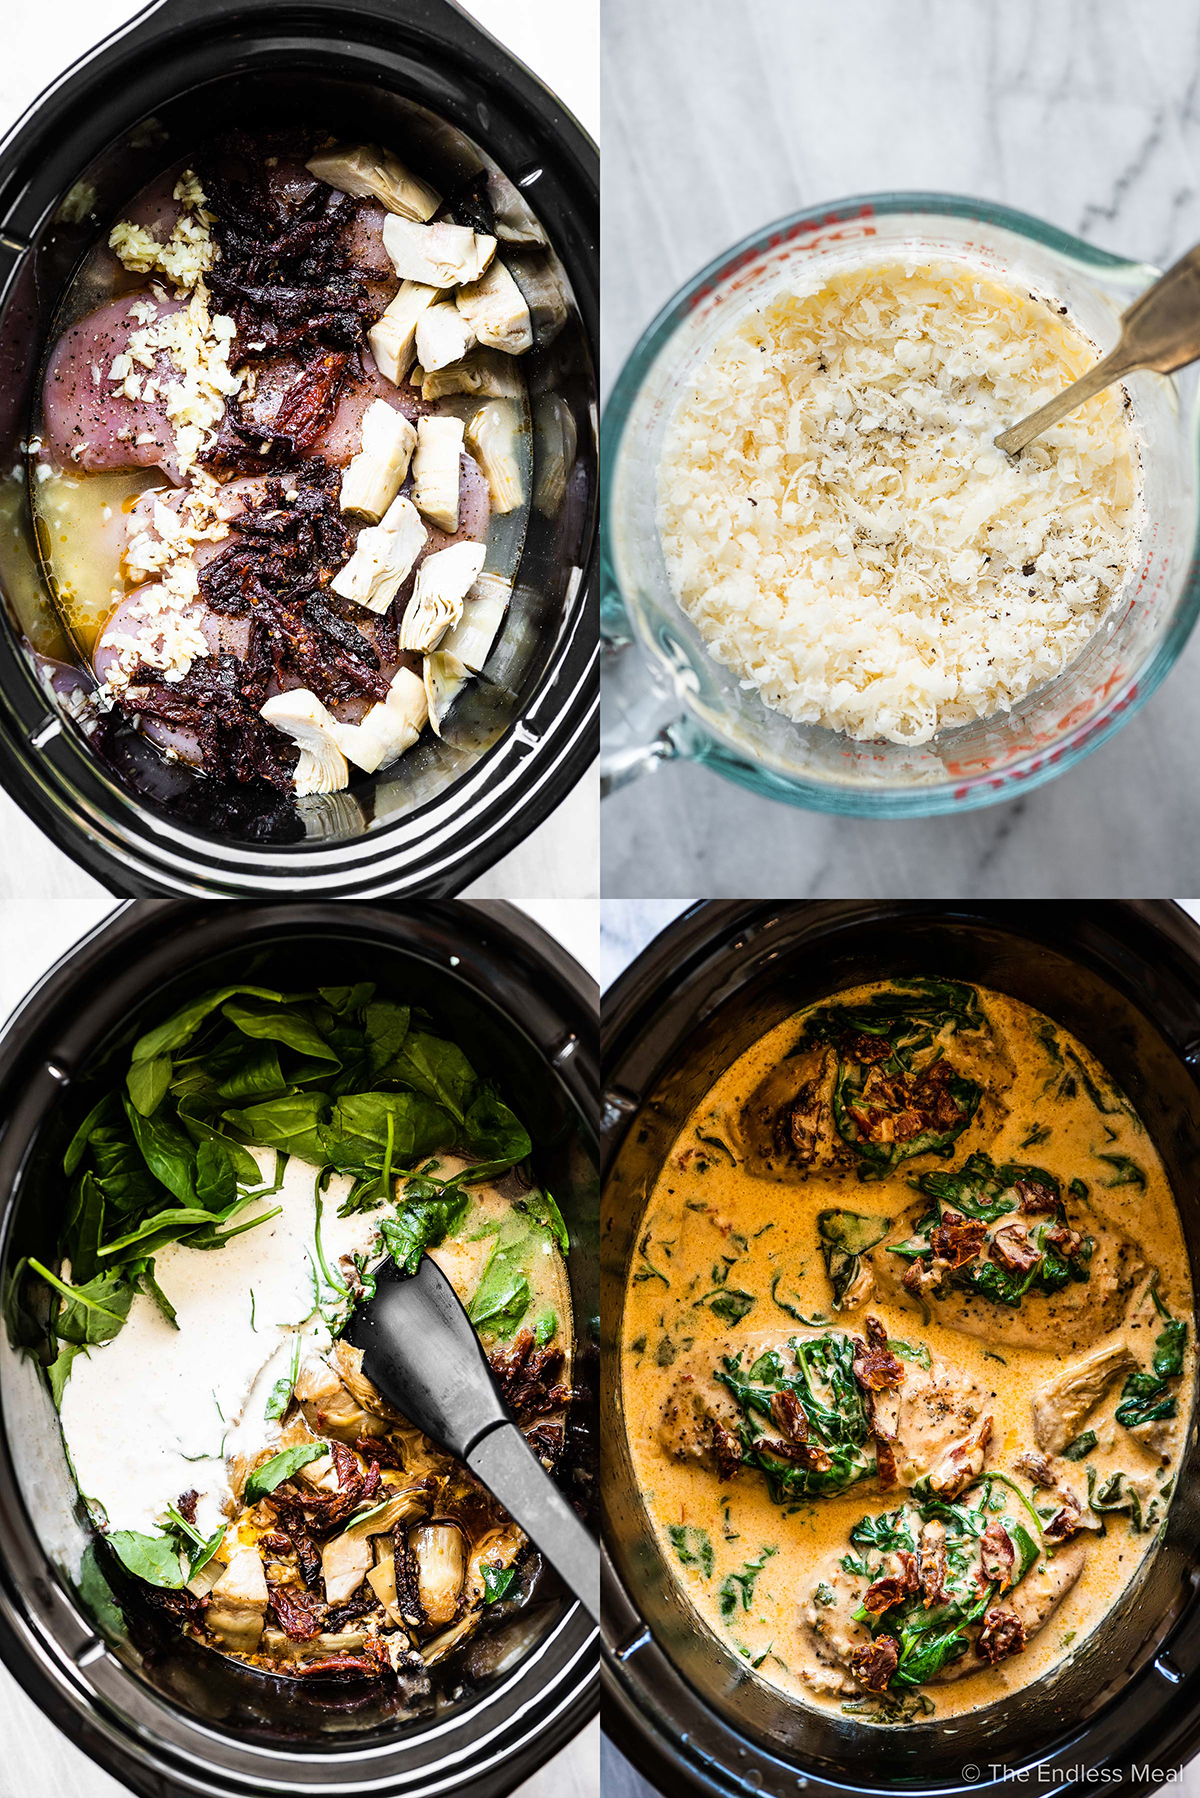 4 images showing the steps to make Crock Pot tuscan chicken